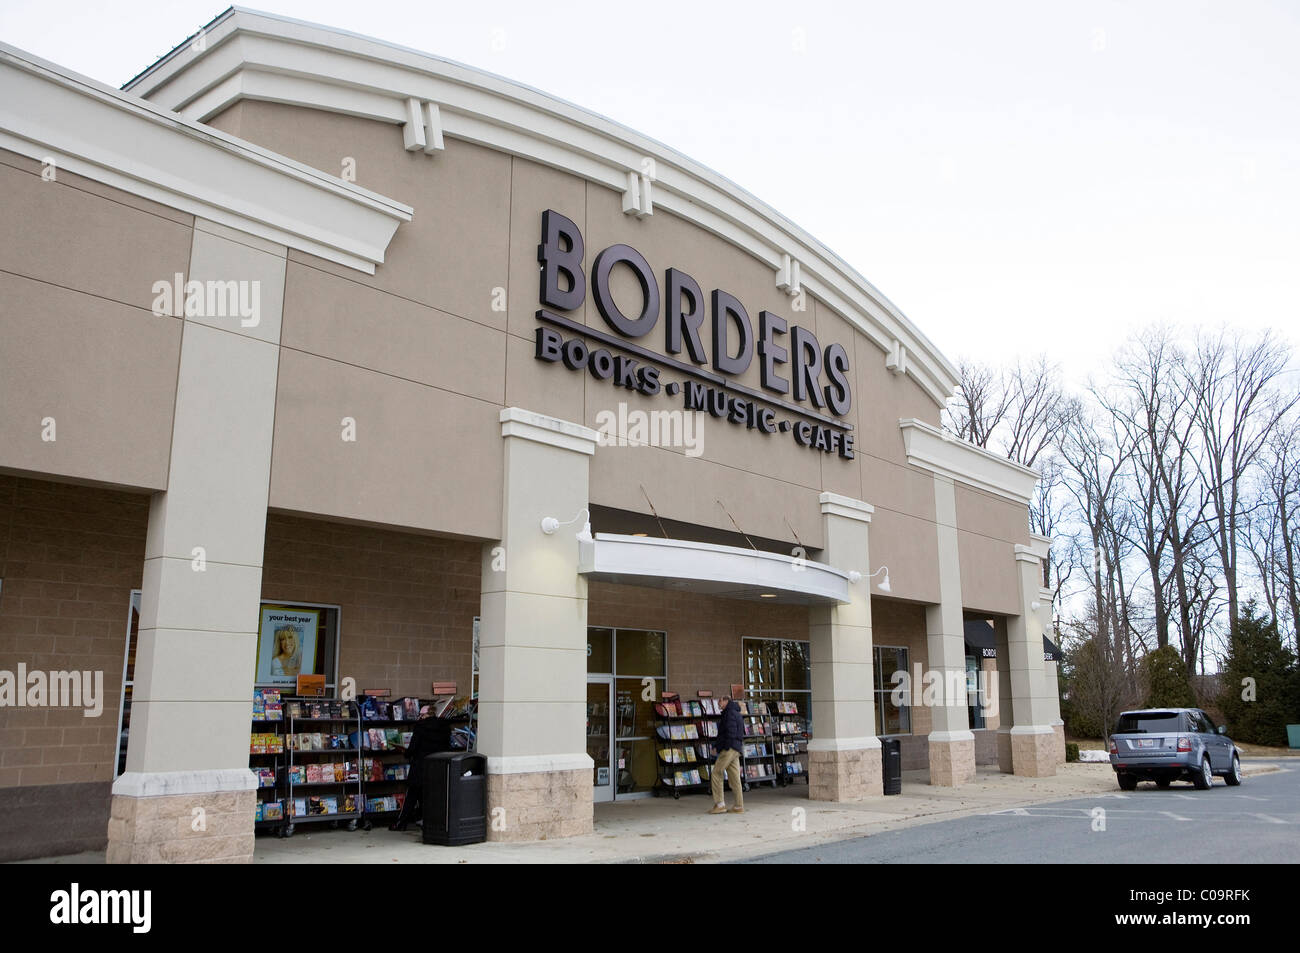 A Borders bookstore.  - Stock Image